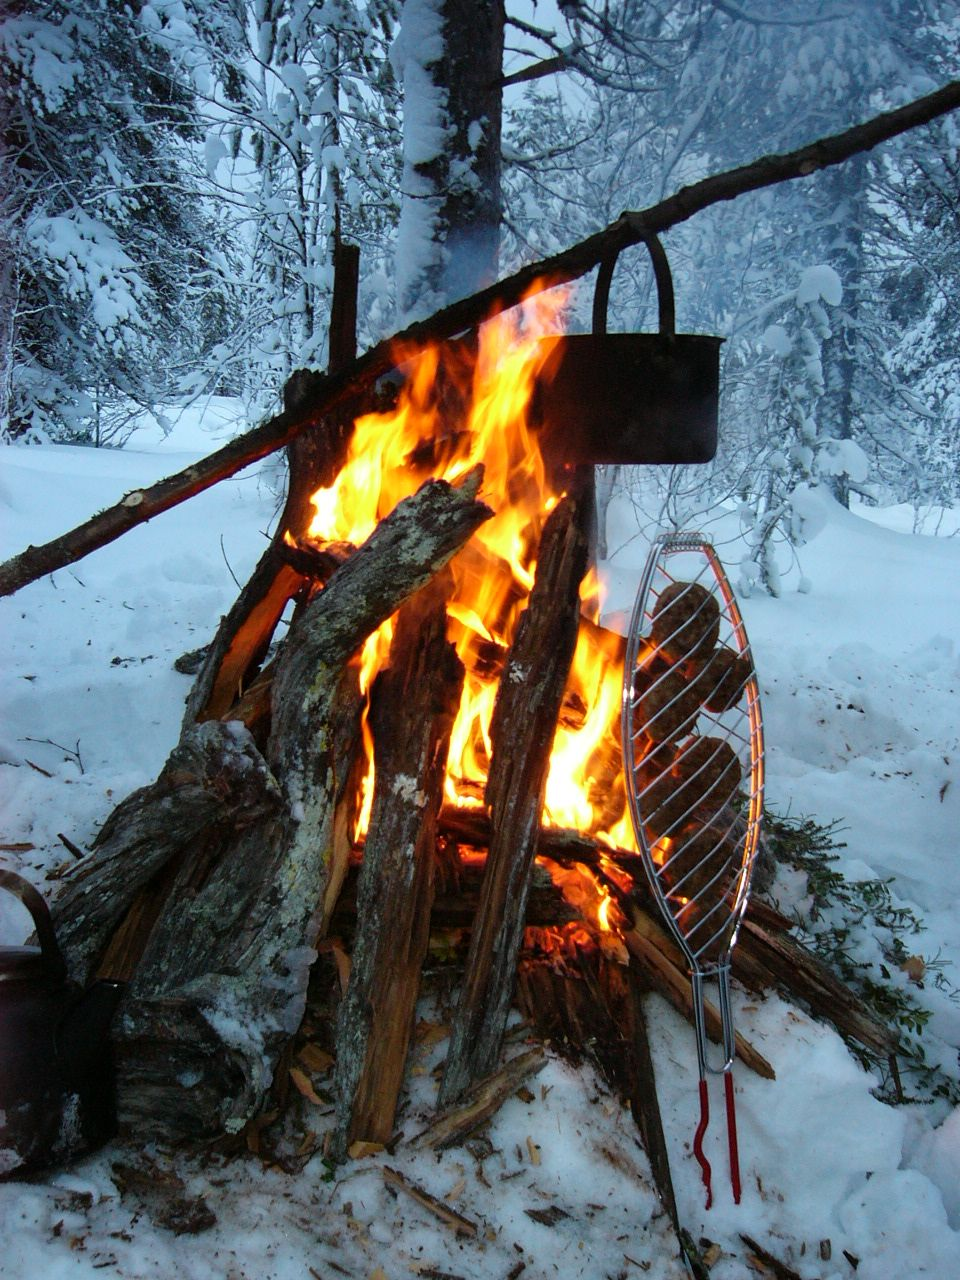 Outdoor Lunch Winter Safari Taivalkoski Lapland